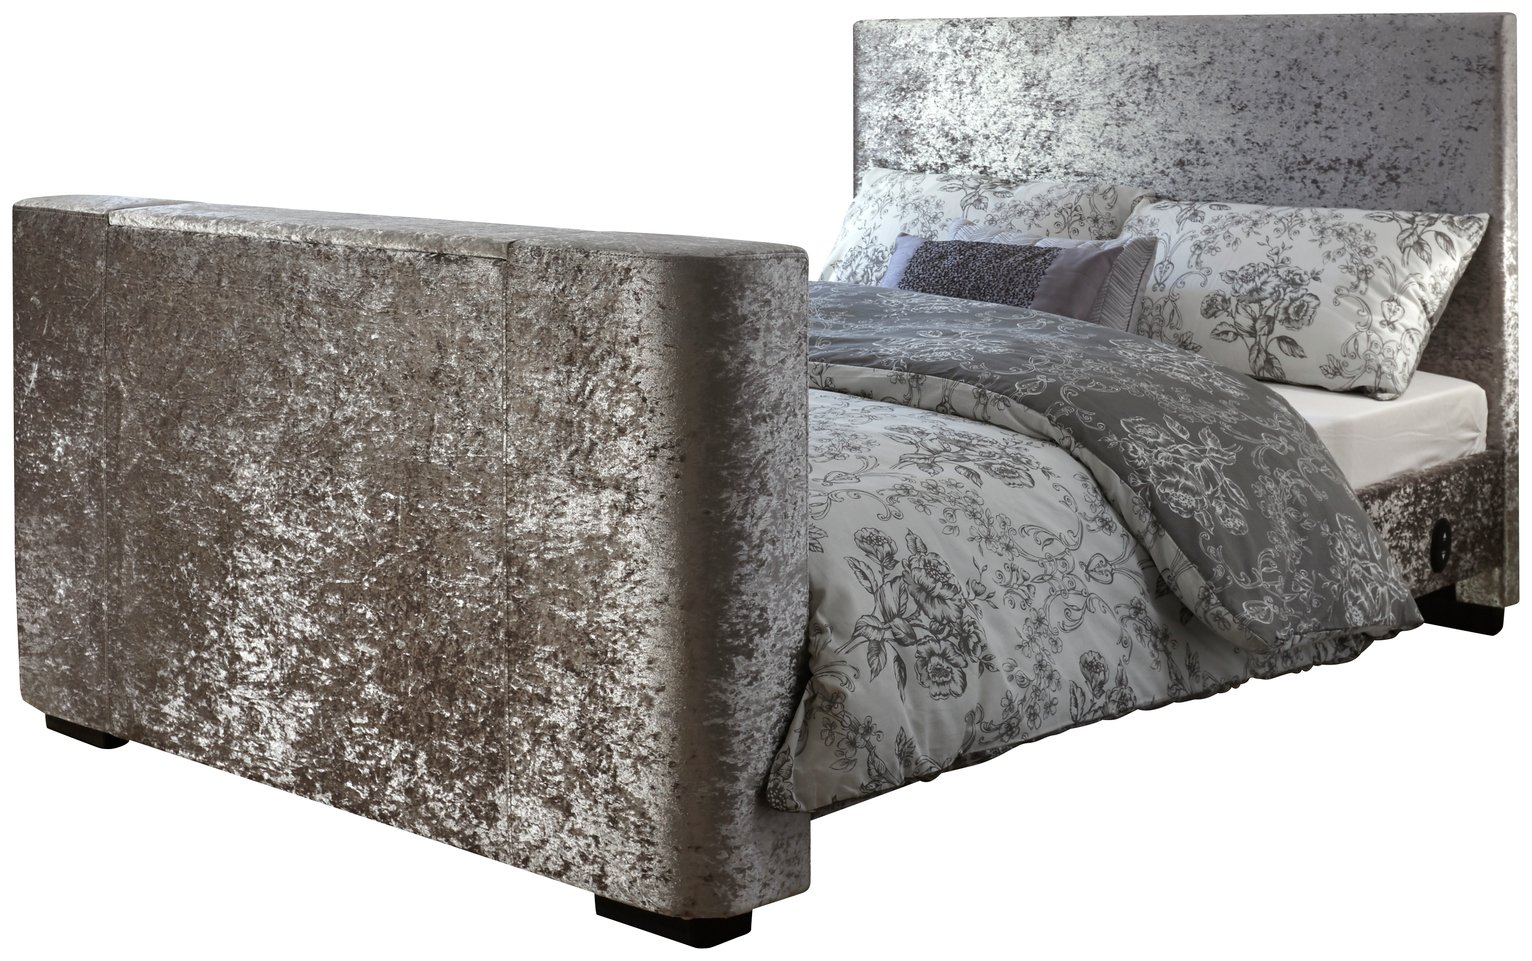 GFW Newark Crushed Velvet Double TV Bed Frame - Silver